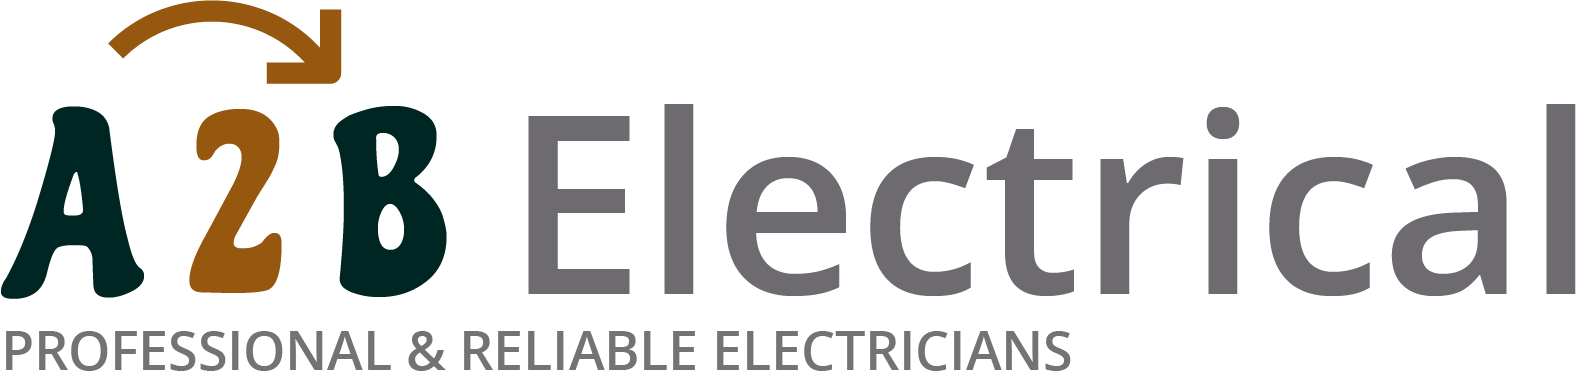 If you have electrical wiring problems in South Kensington, we can provide an electrician to have a look for you.